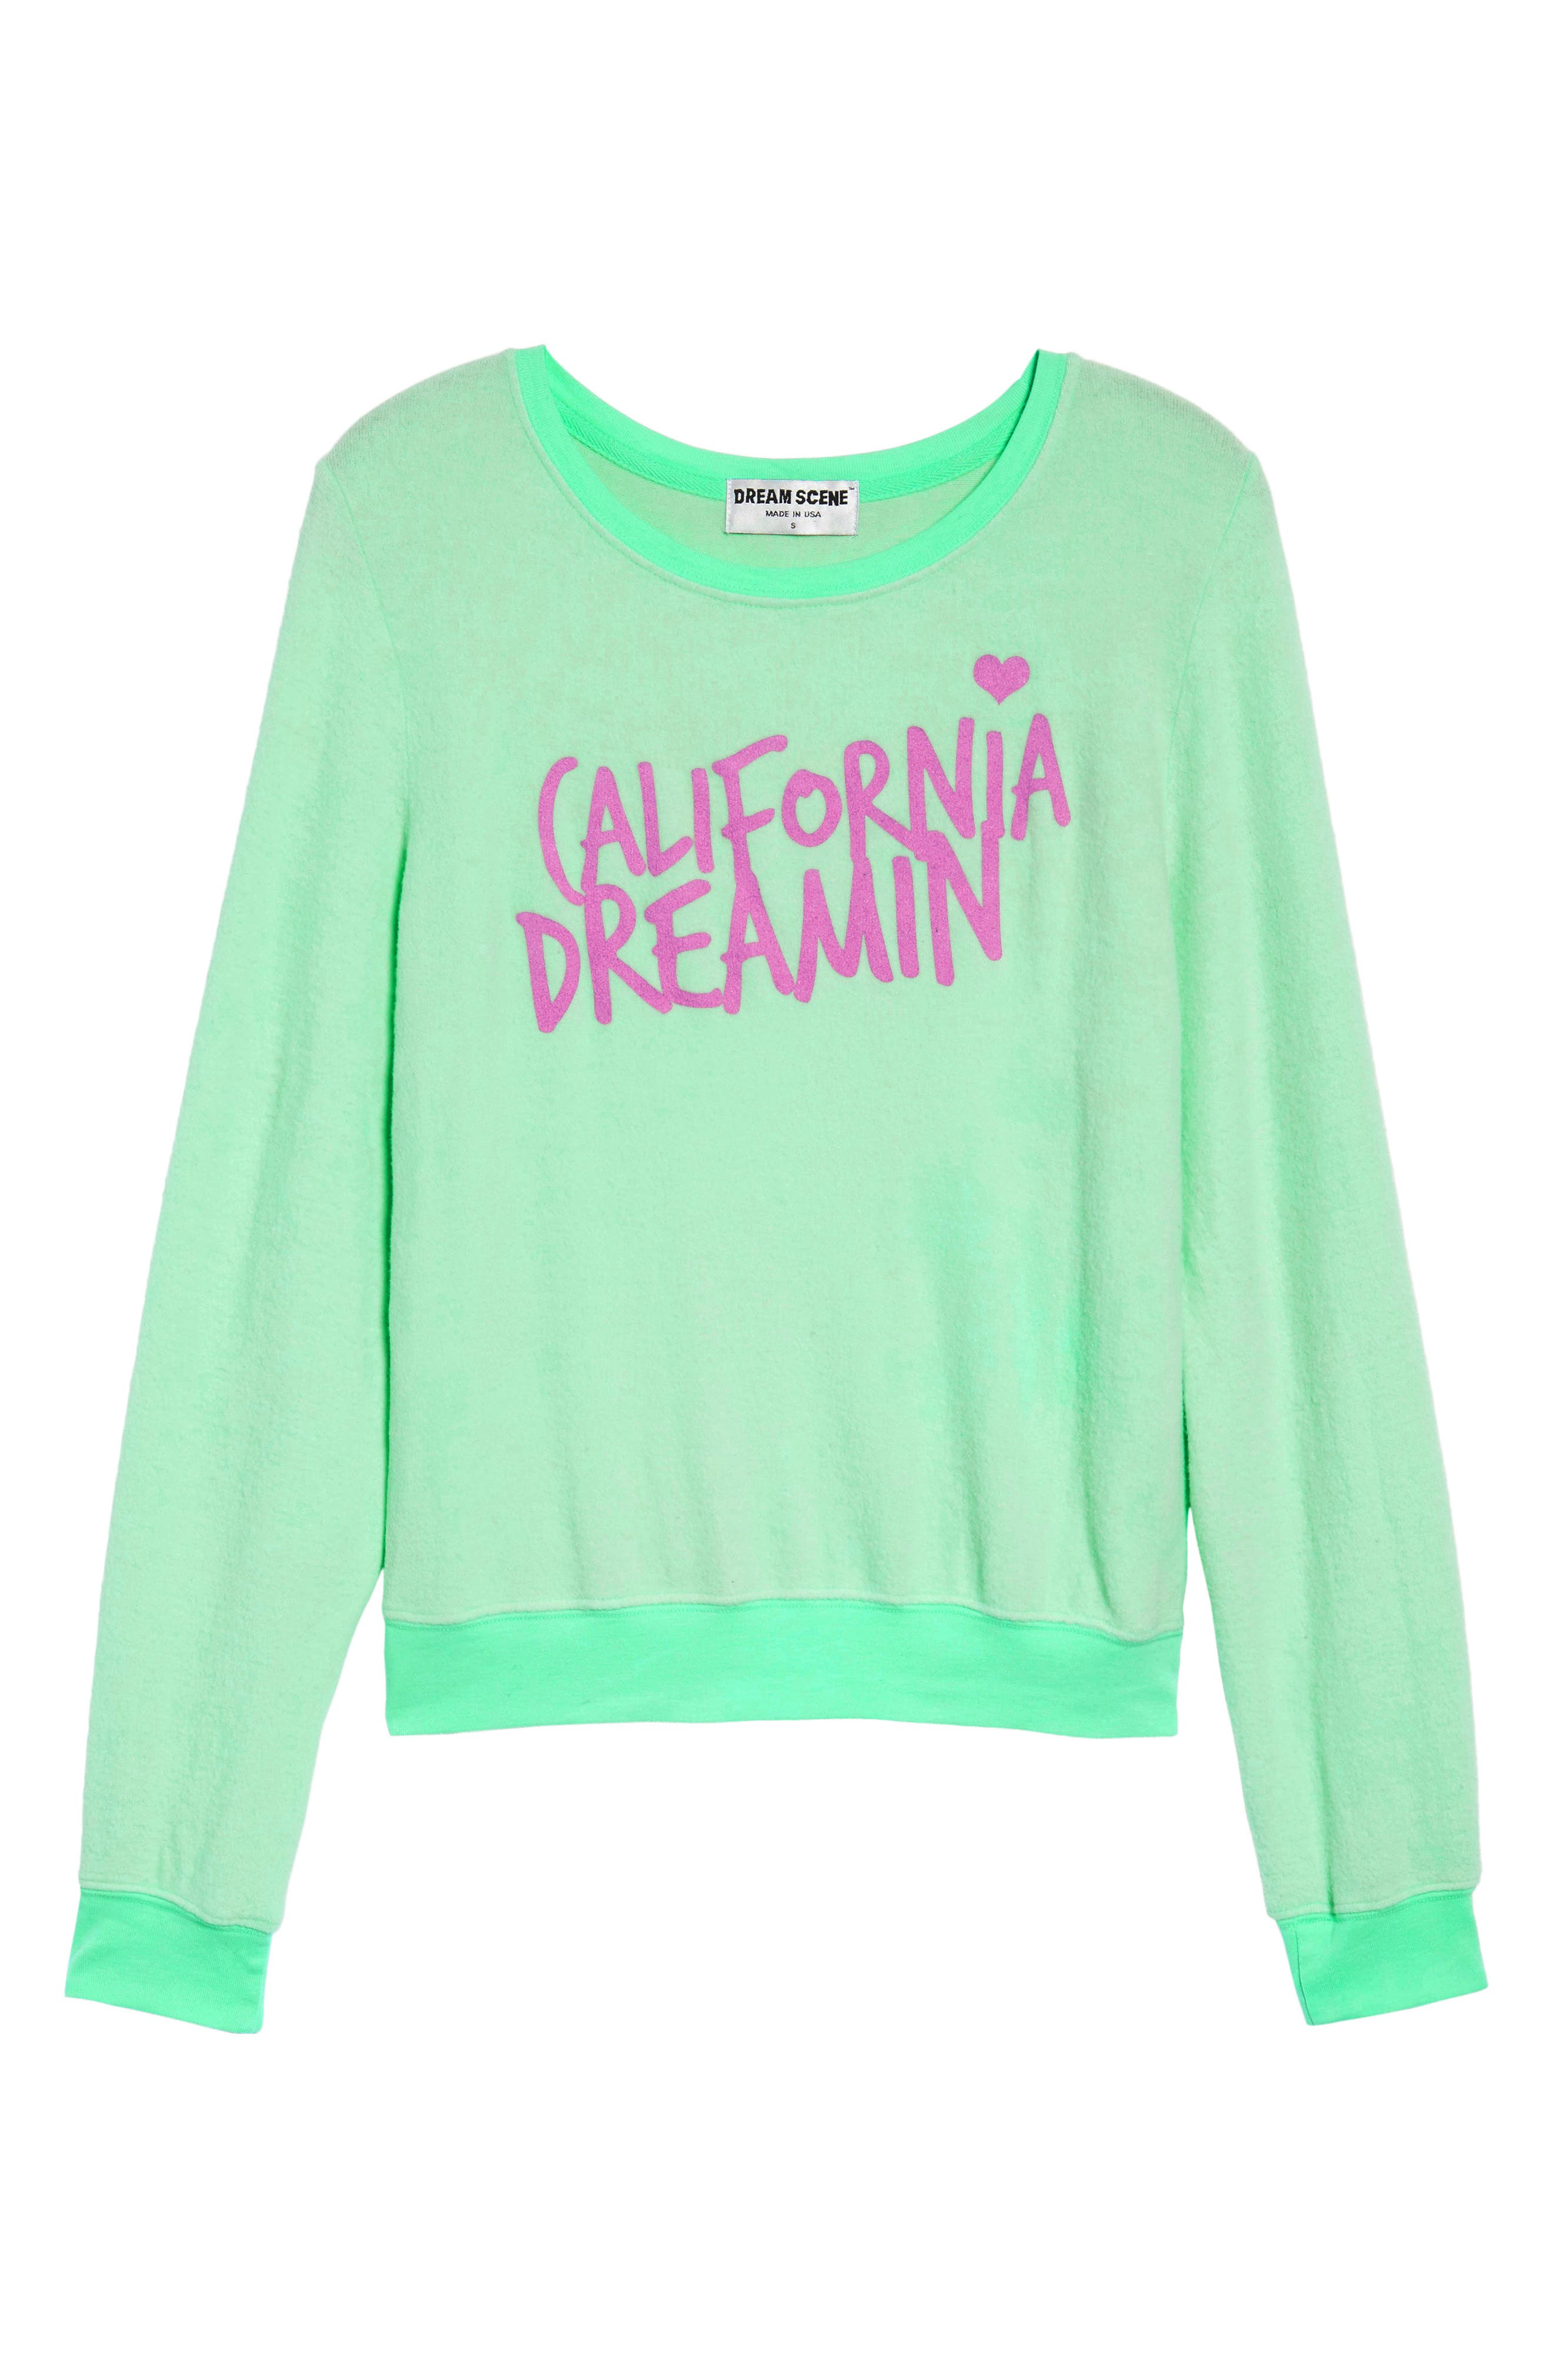 California Dreamin Sweatshirt,                             Alternate thumbnail 6, color,                             Mint Julep